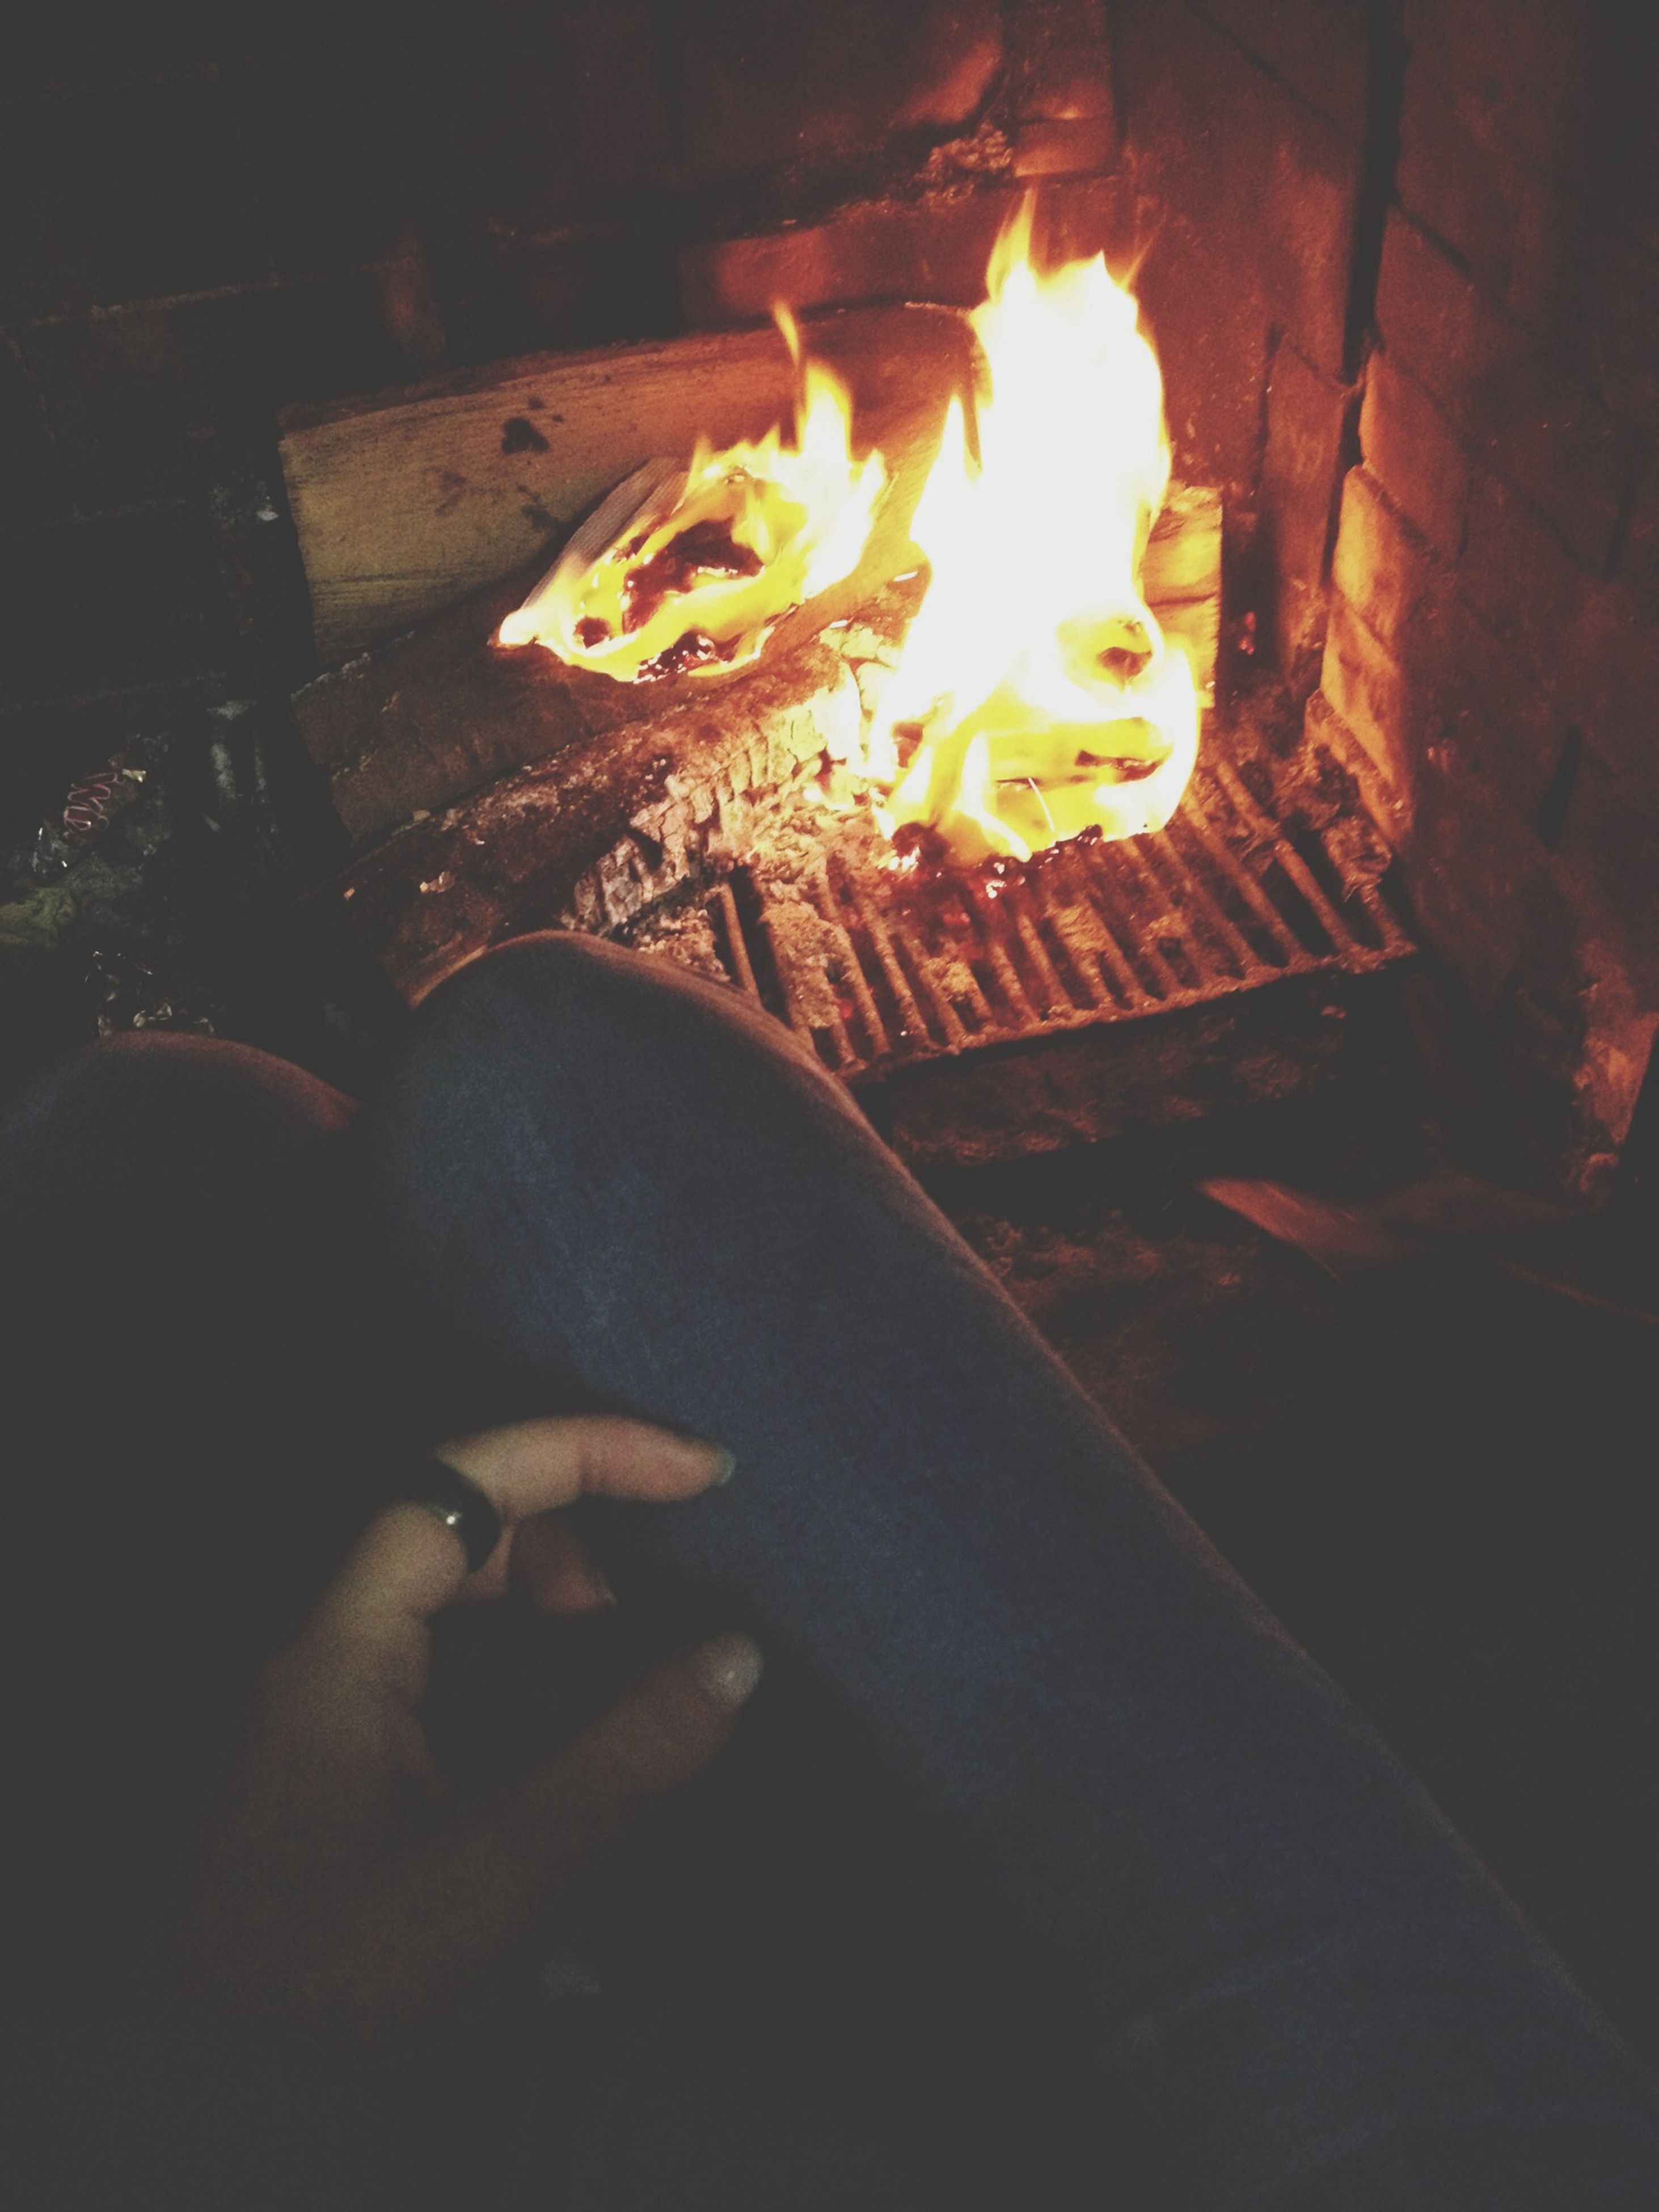 burning, flame, fire - natural phenomenon, heat - temperature, glowing, night, indoors, fire, high angle view, wood - material, bonfire, illuminated, firewood, orange color, candle, heat, dark, close-up, light - natural phenomenon, fireplace